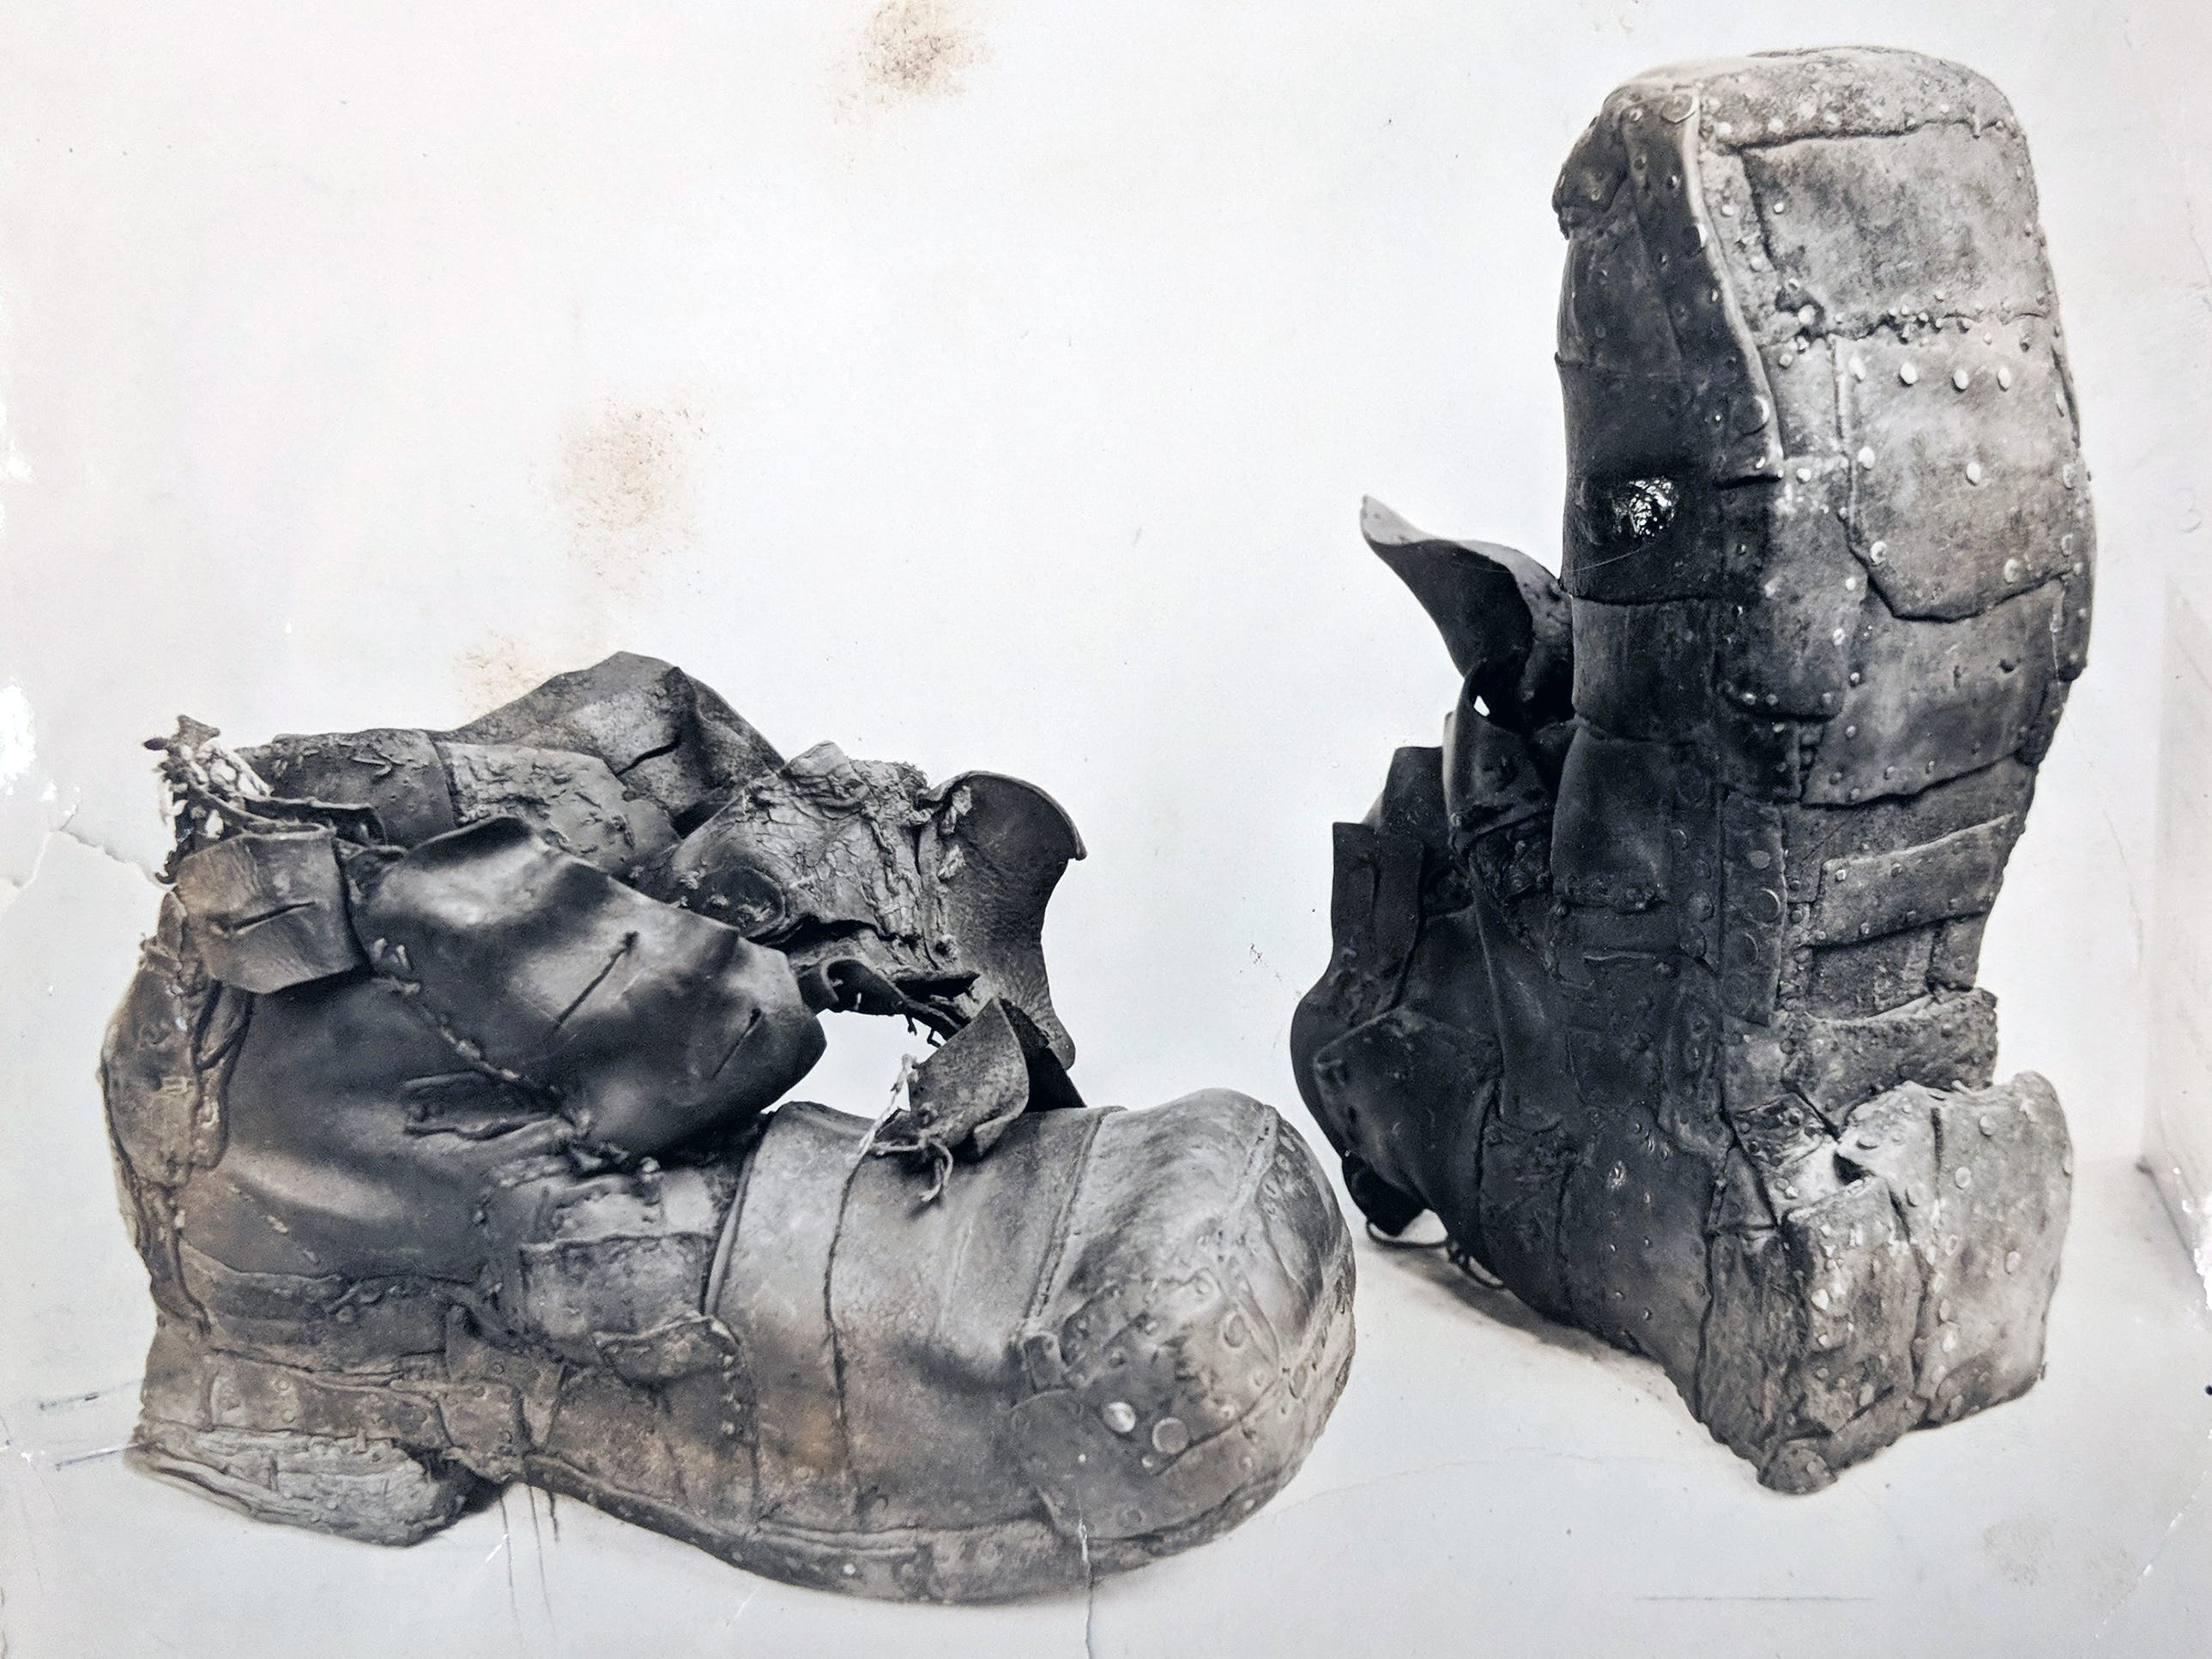 This pair of shoes once belonged to Edward Molenaux, who purchased them in 1905 from Reineberg's shoe store in York. Molenaux resolved to never part with the shoes and kept attaching found pieces of  leather to them until the shoes were 14 1/2 inches long and weighed about nine pounds each. Reineberg's still has the pair of shoes.